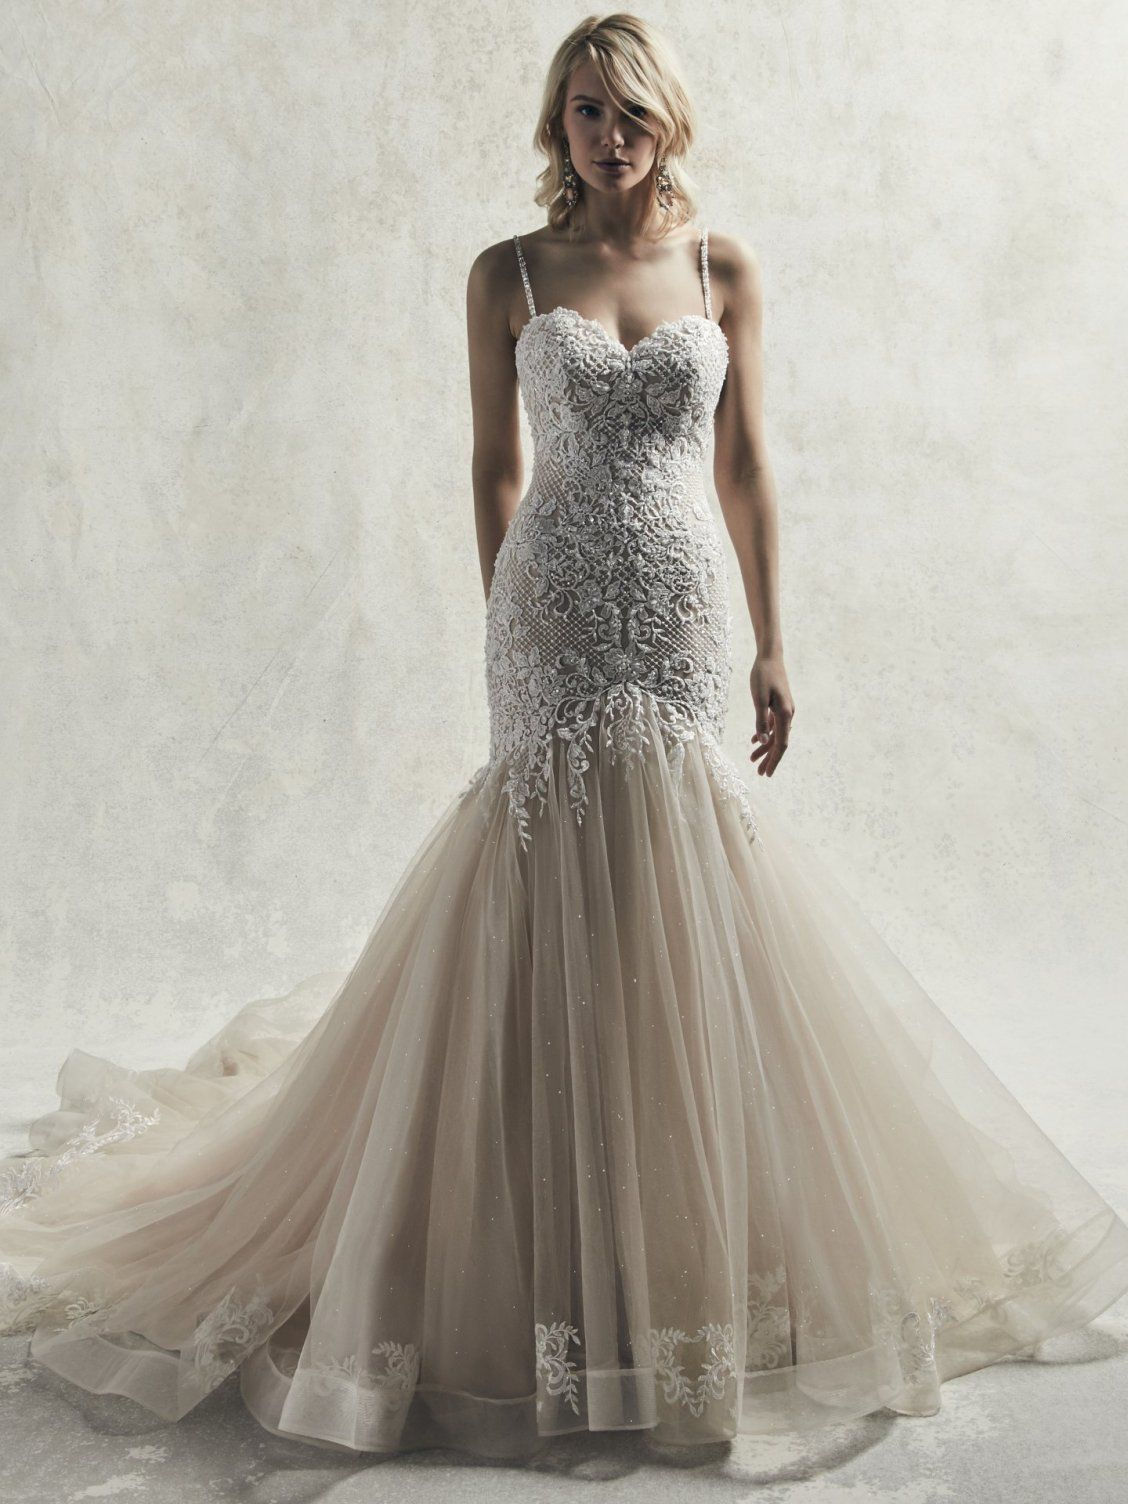 e698240ed2dd Sottero and Midgley - WARNER This exquisite mermaid wedding gown features a  bodice accented in beaded lace motifs, crosshatch detail and Swarovski  crystals, ...